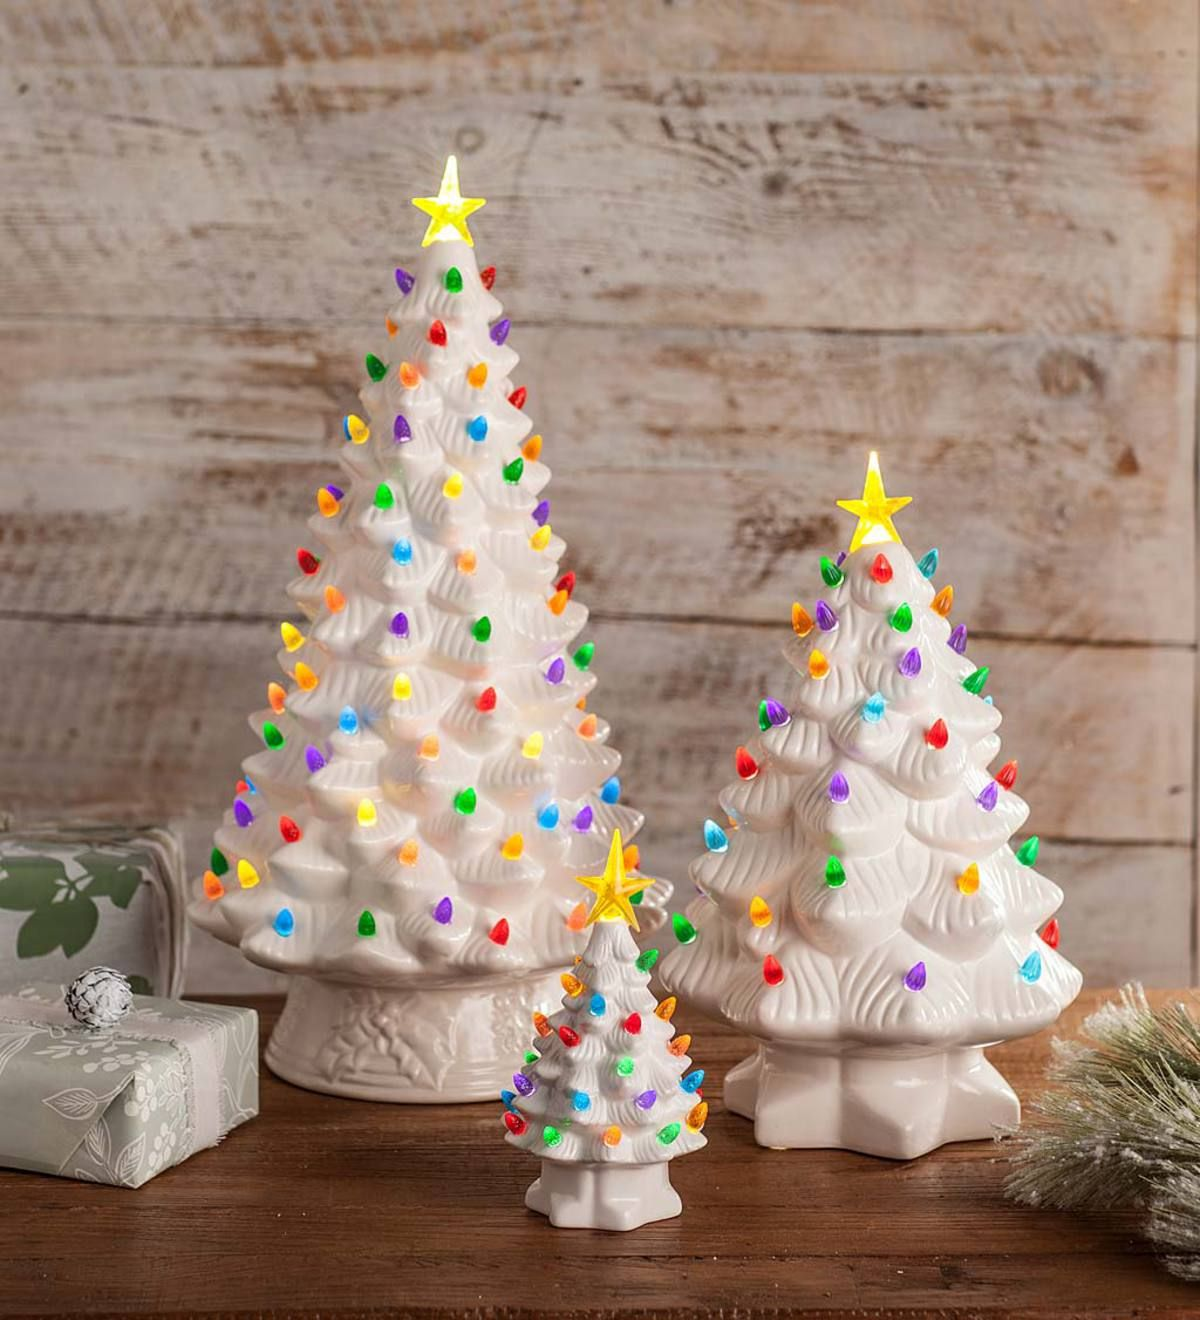 Indoor Outdoor Battery Operated Lighted Ceramic Christmas Tree Outdoor Holiday Decorations Holiday Shop Plowhearth Ceramic Christmas Trees Outdoor Christmas Decorations Outdoor Christmas